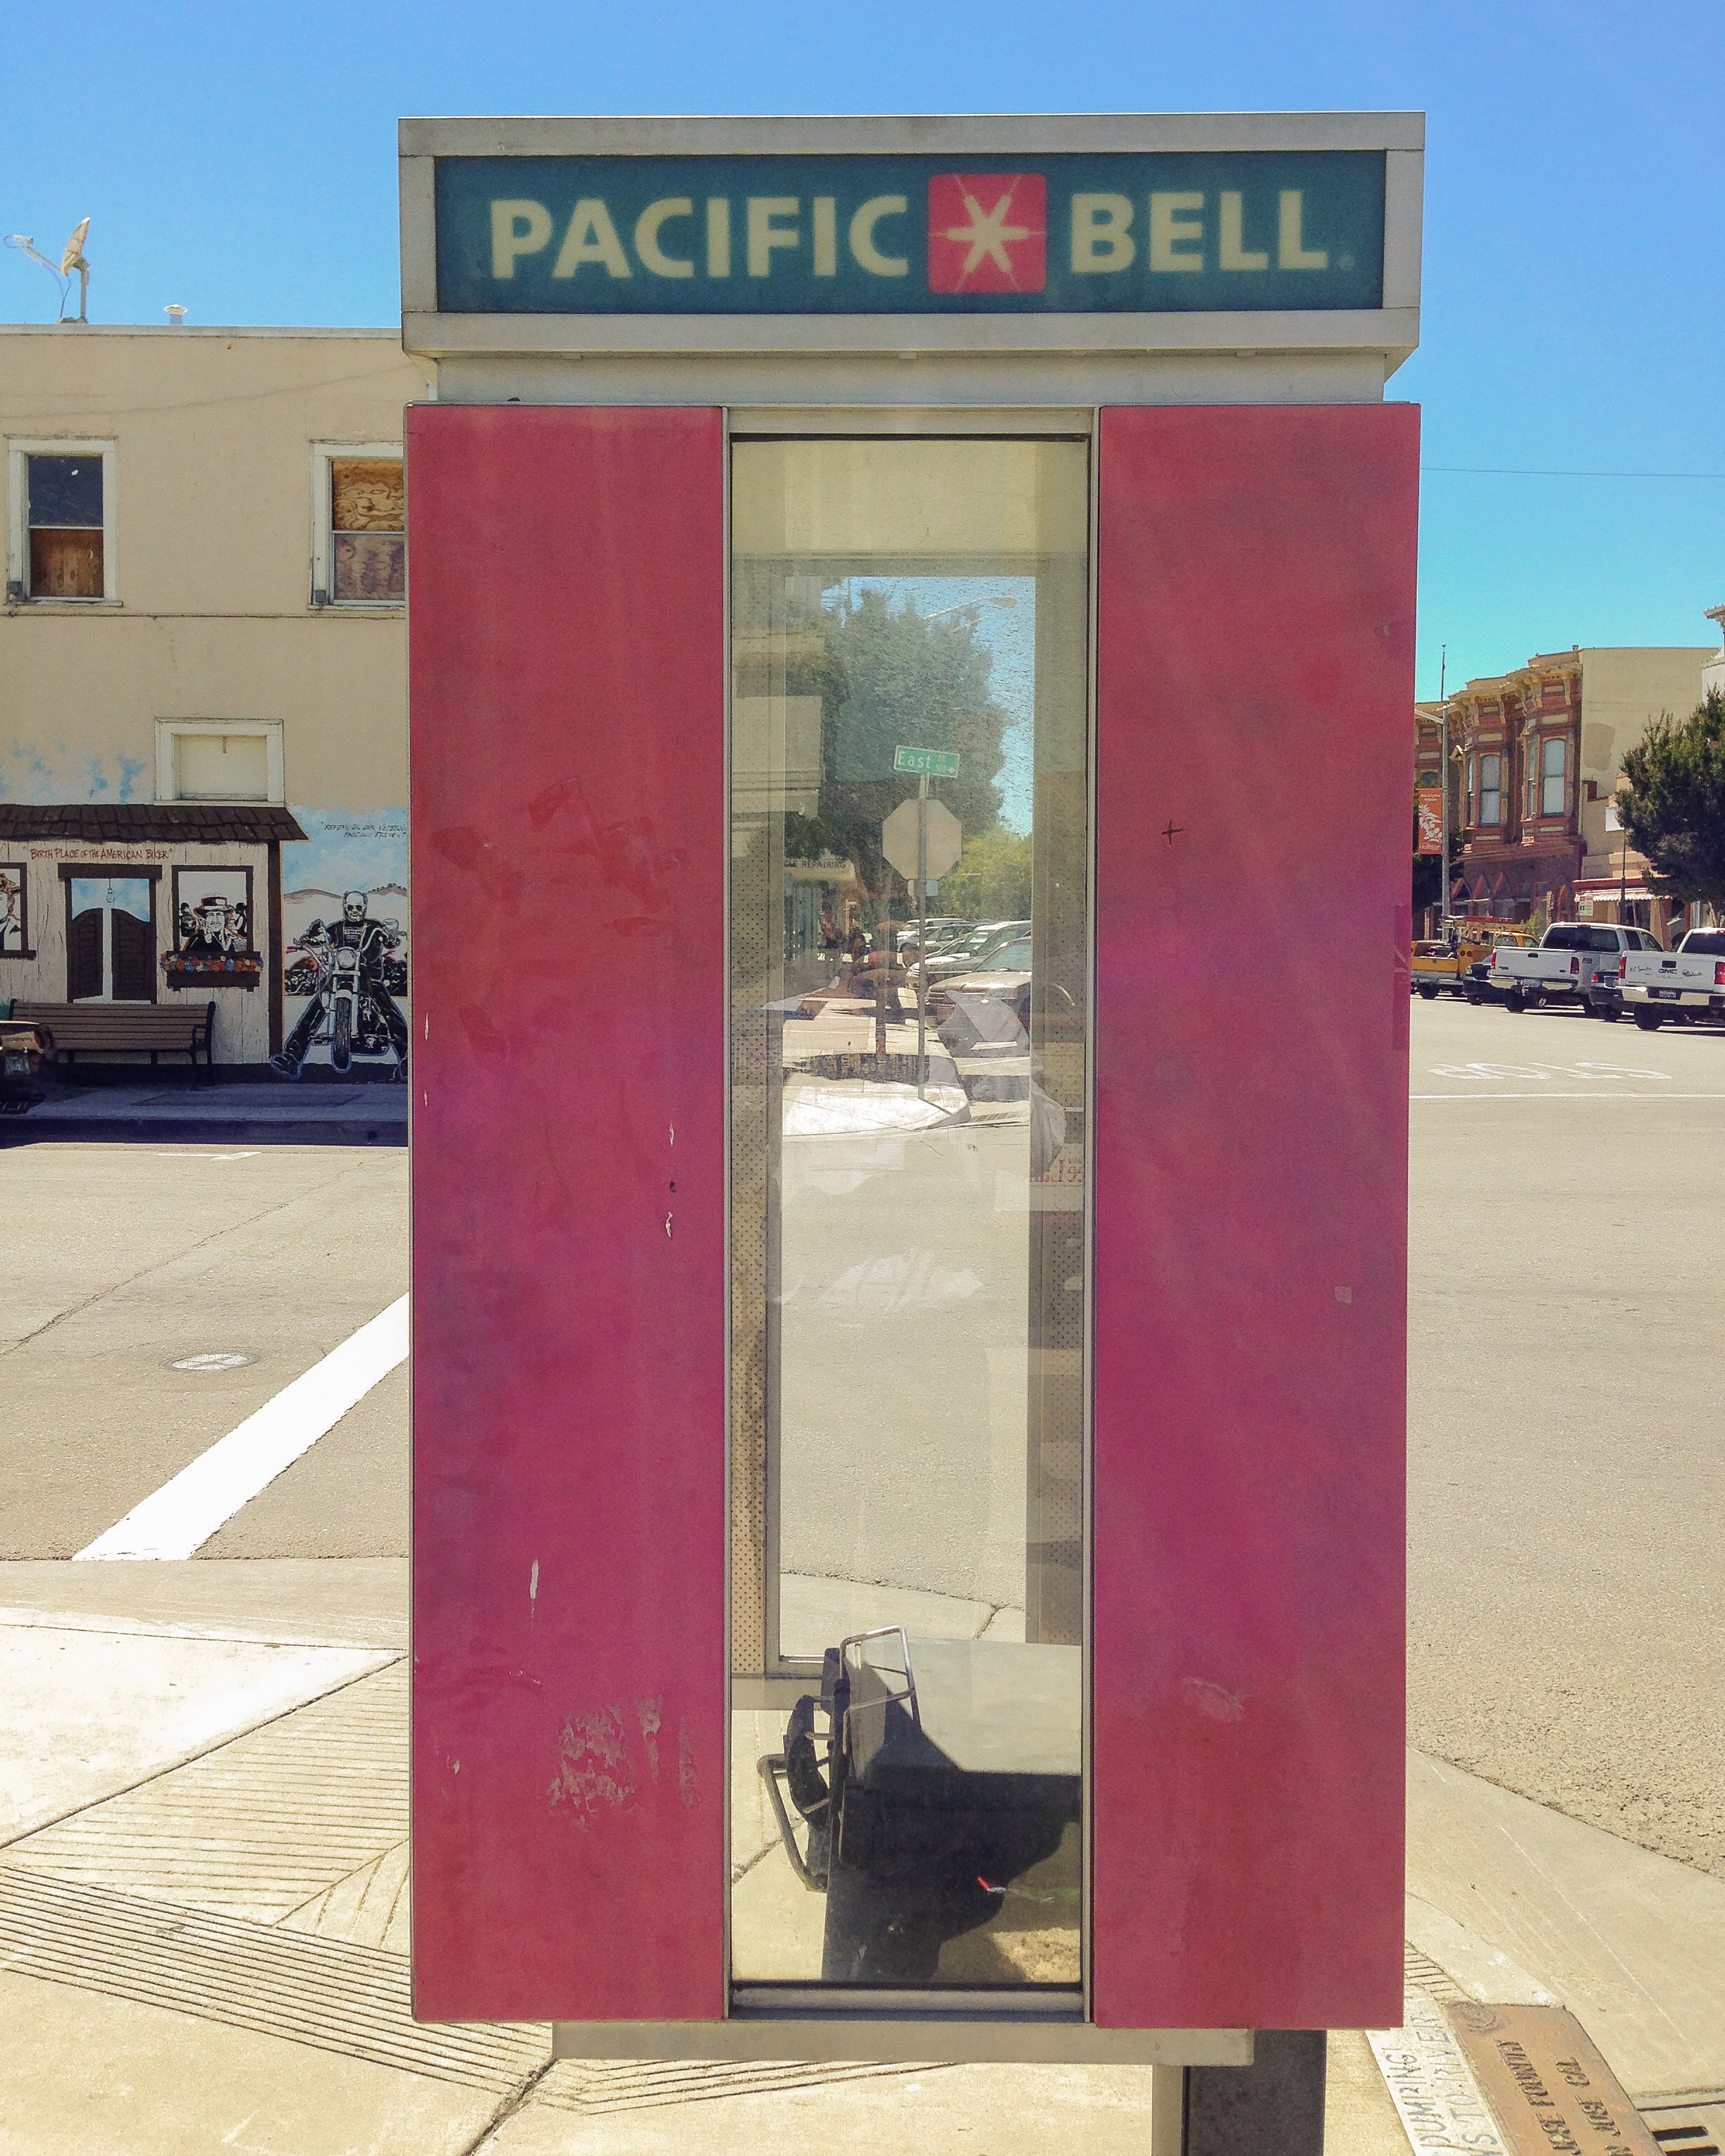 Pacific Bell, Hollister, California, 2014